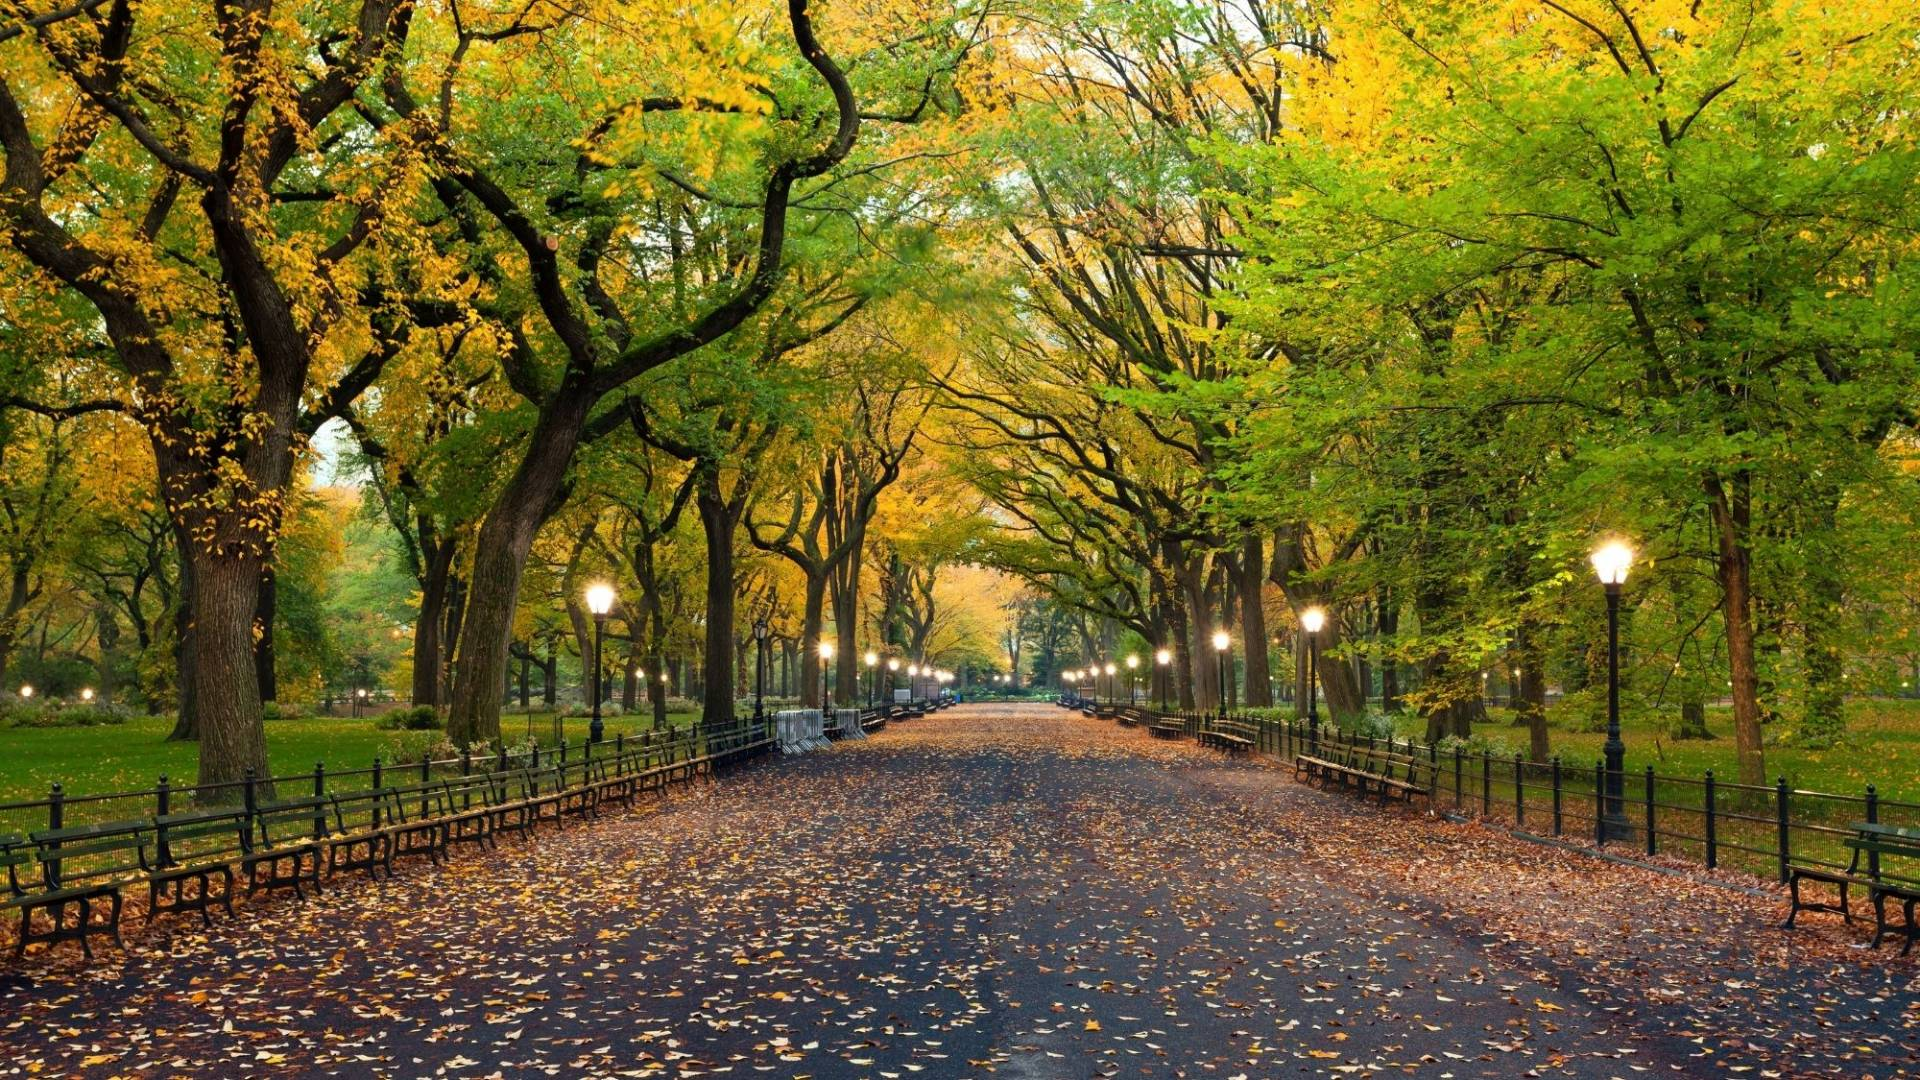 Central Park is an amazing place within New York City, but it has a bit of a dark past. Learn about New York City through social justice issues such as how Central Park came to be!